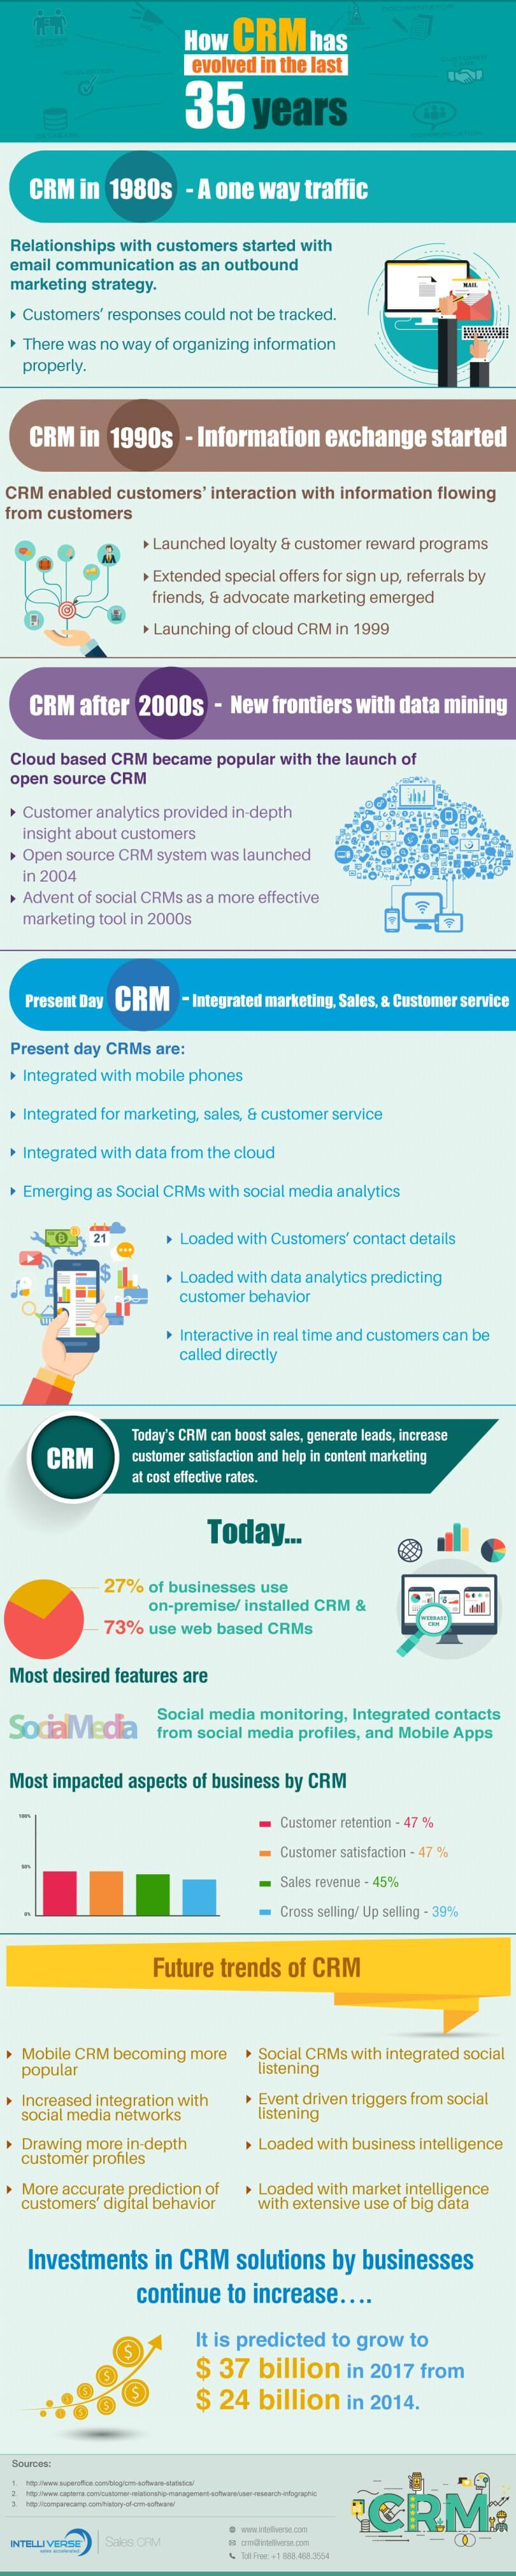 Infografica CRM - Intelliverse